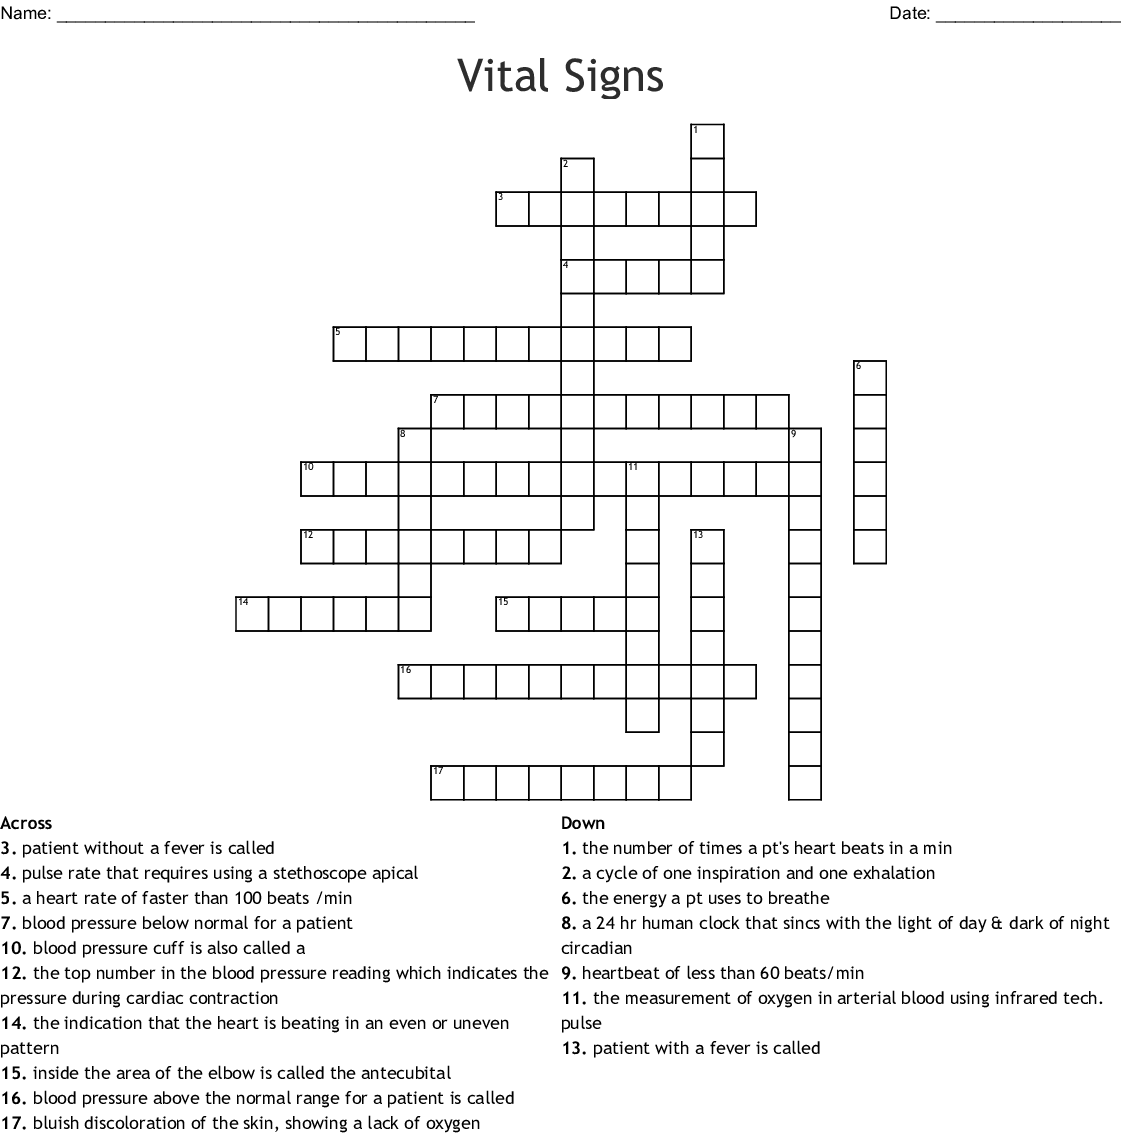 Vital Signs Crossword